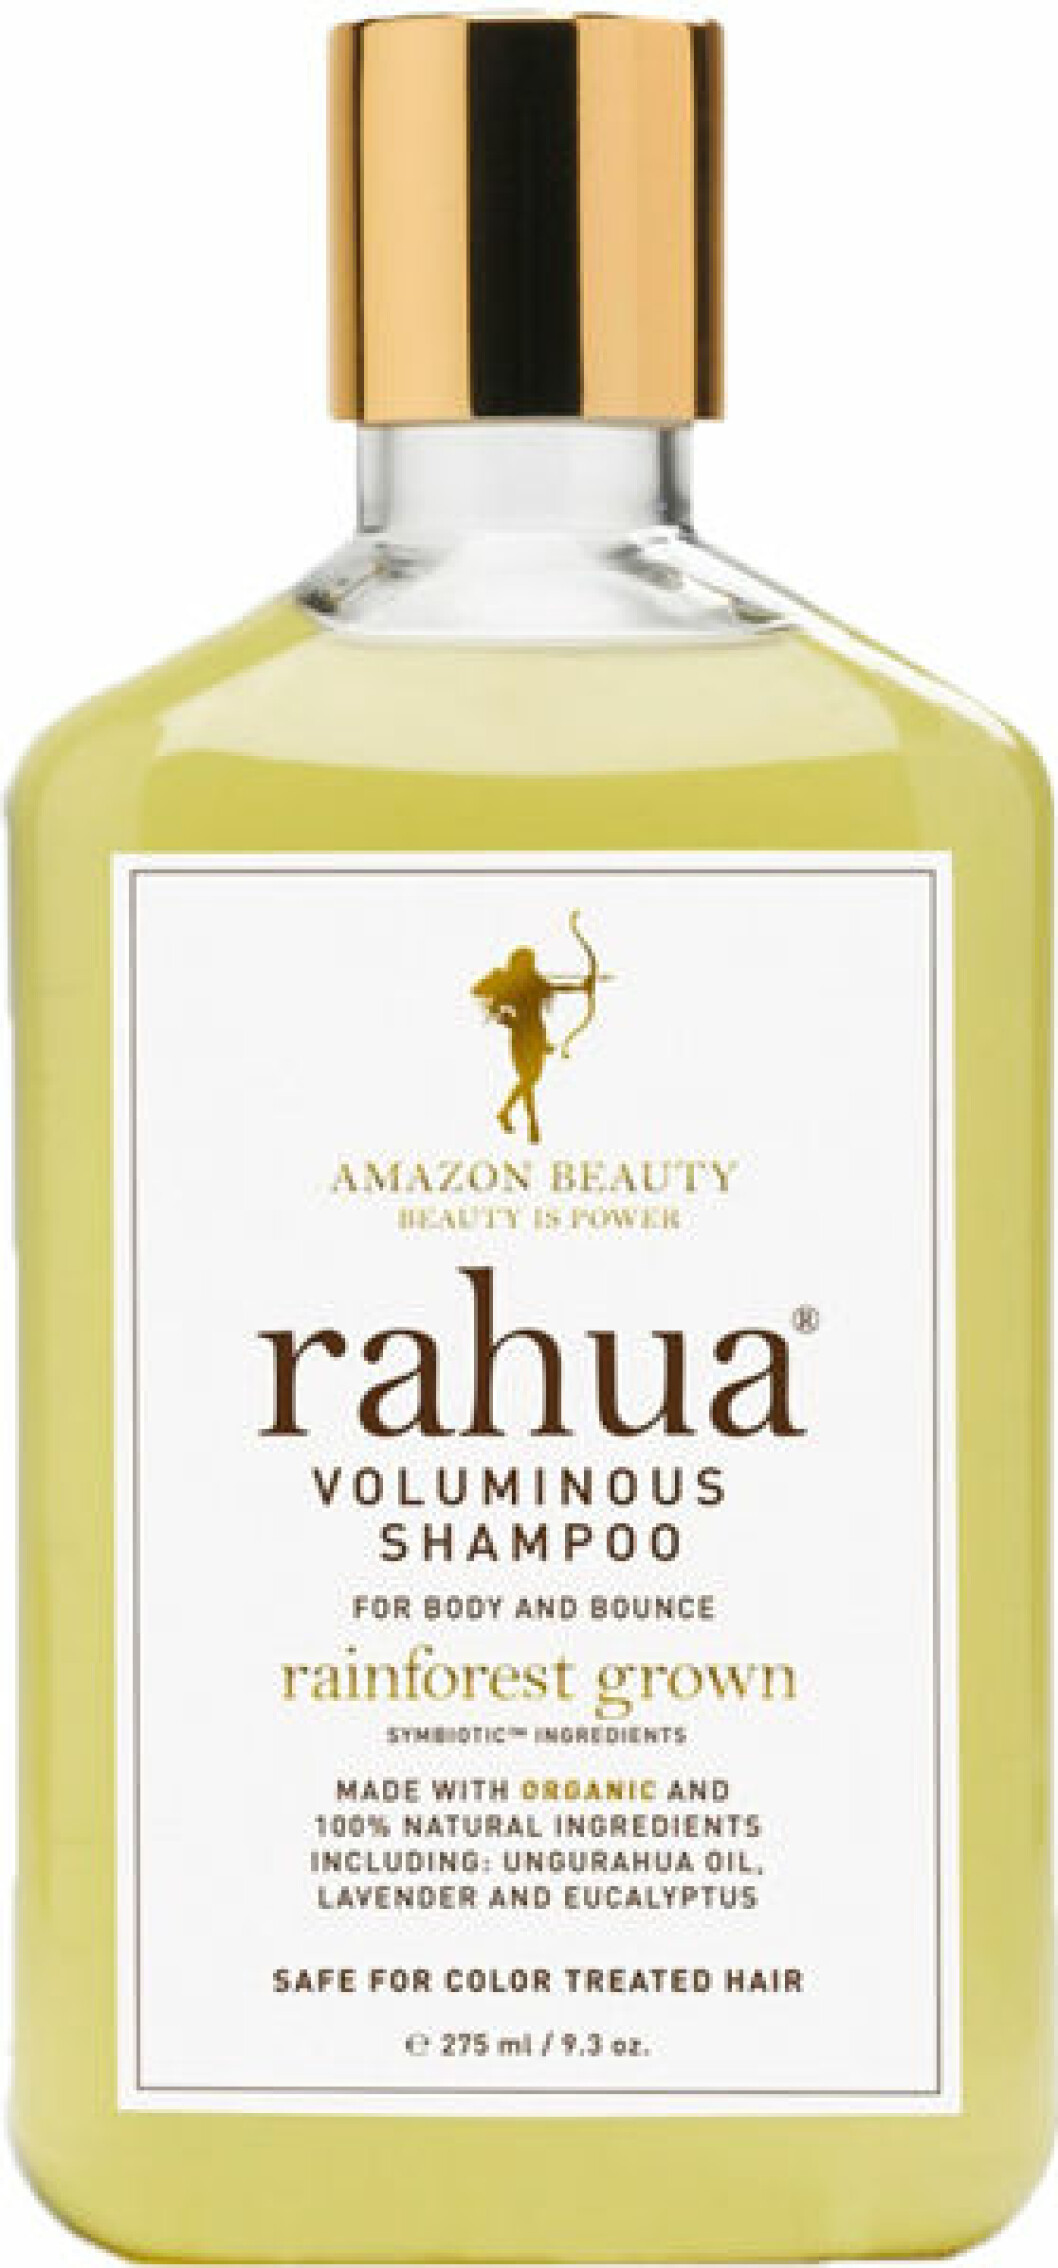 rahua-voluminous-schampoo